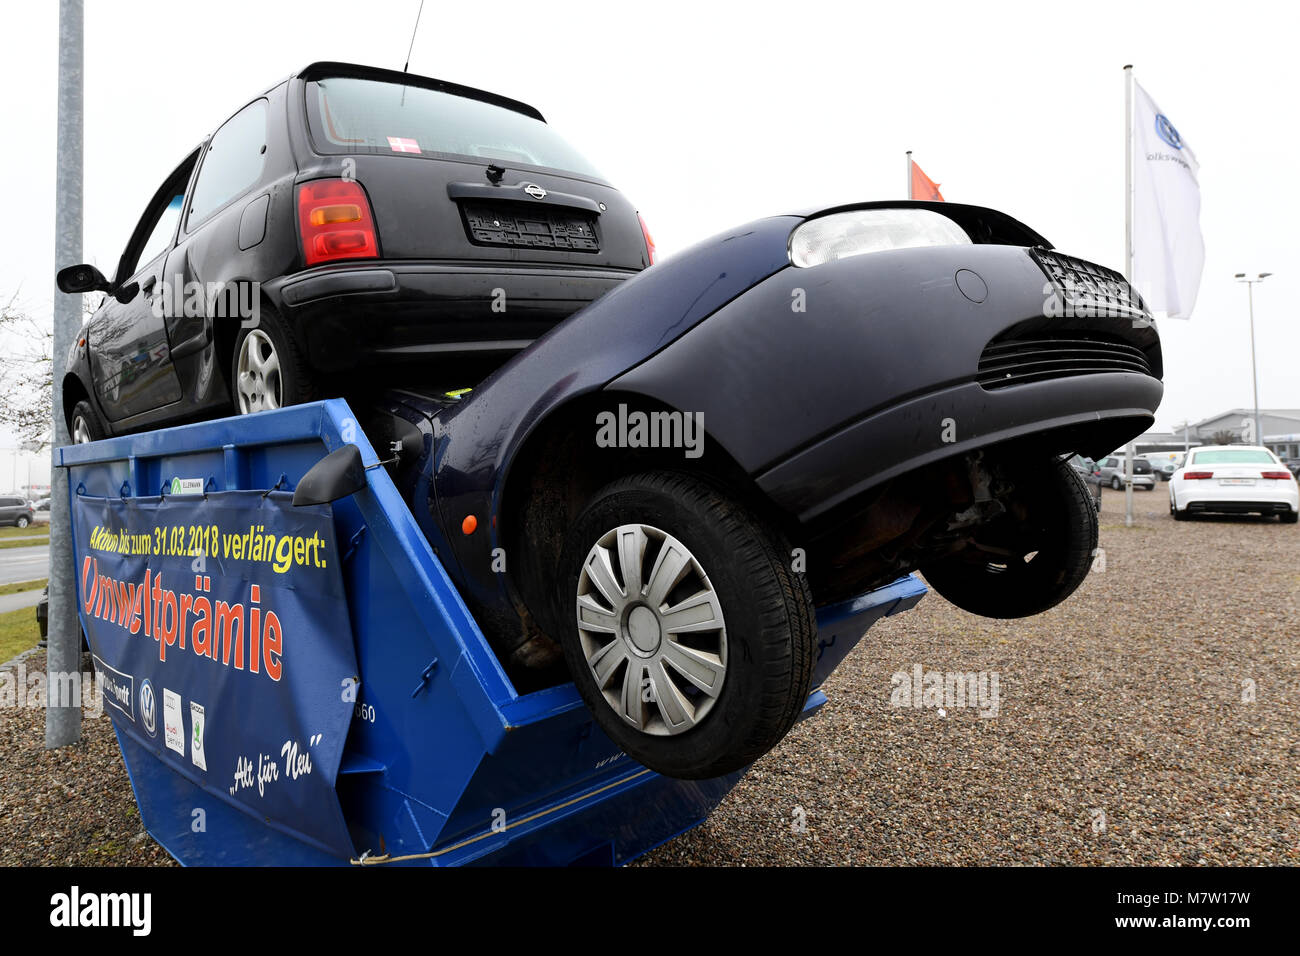 Schleswig, Germany. 13th March, 2018. Two cars stuck in a trash ...